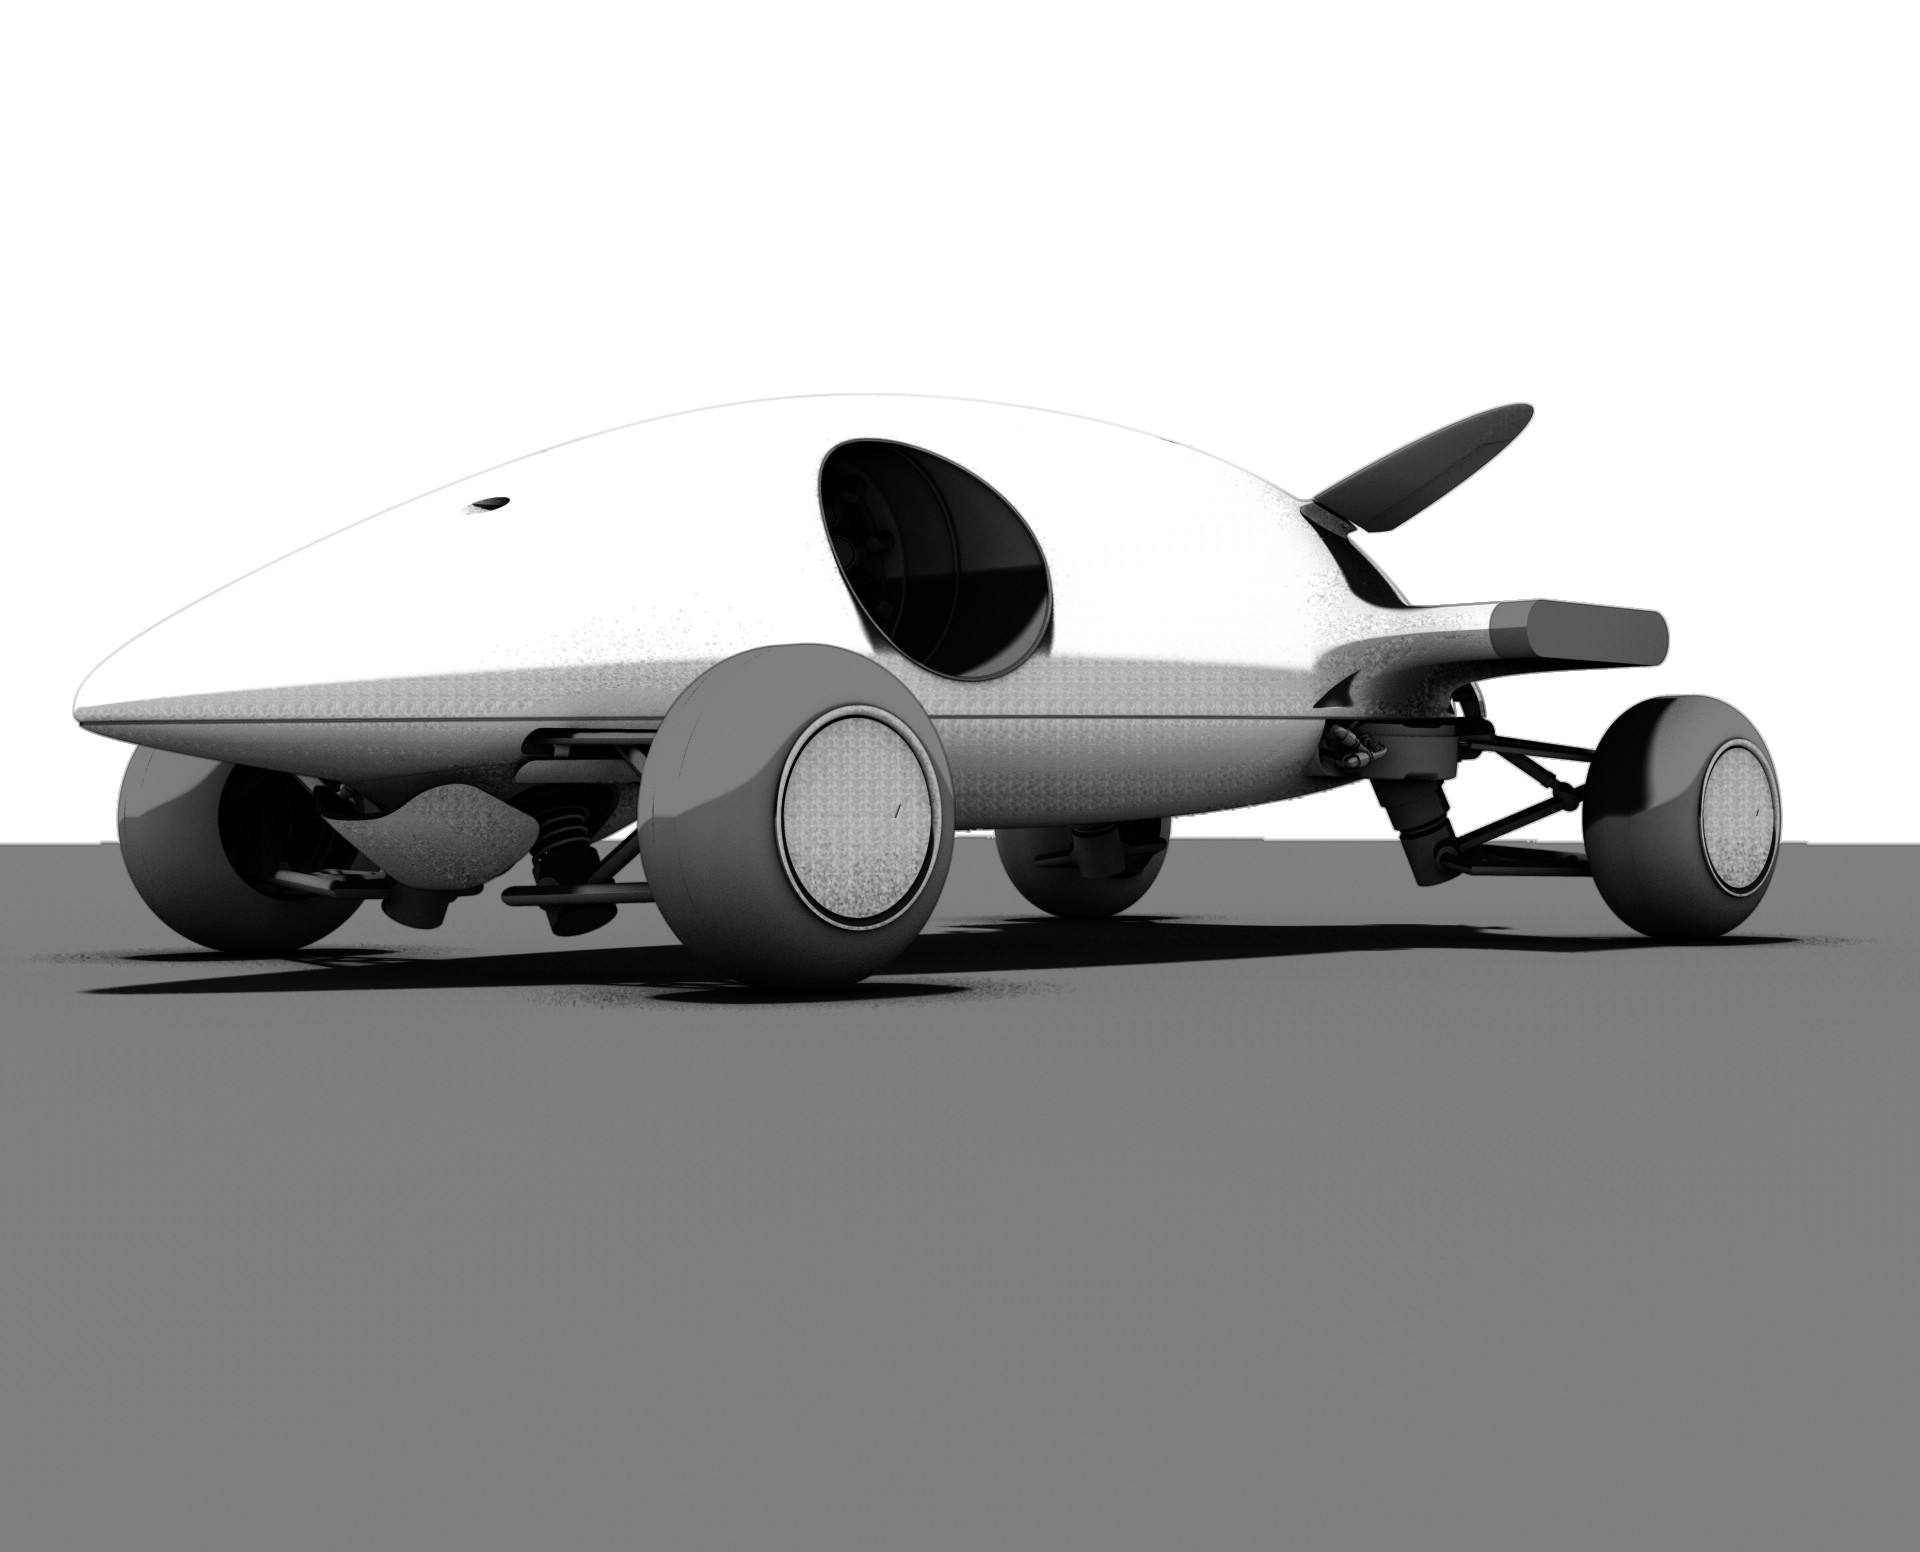 Joachim epper web dolphindrone base3d